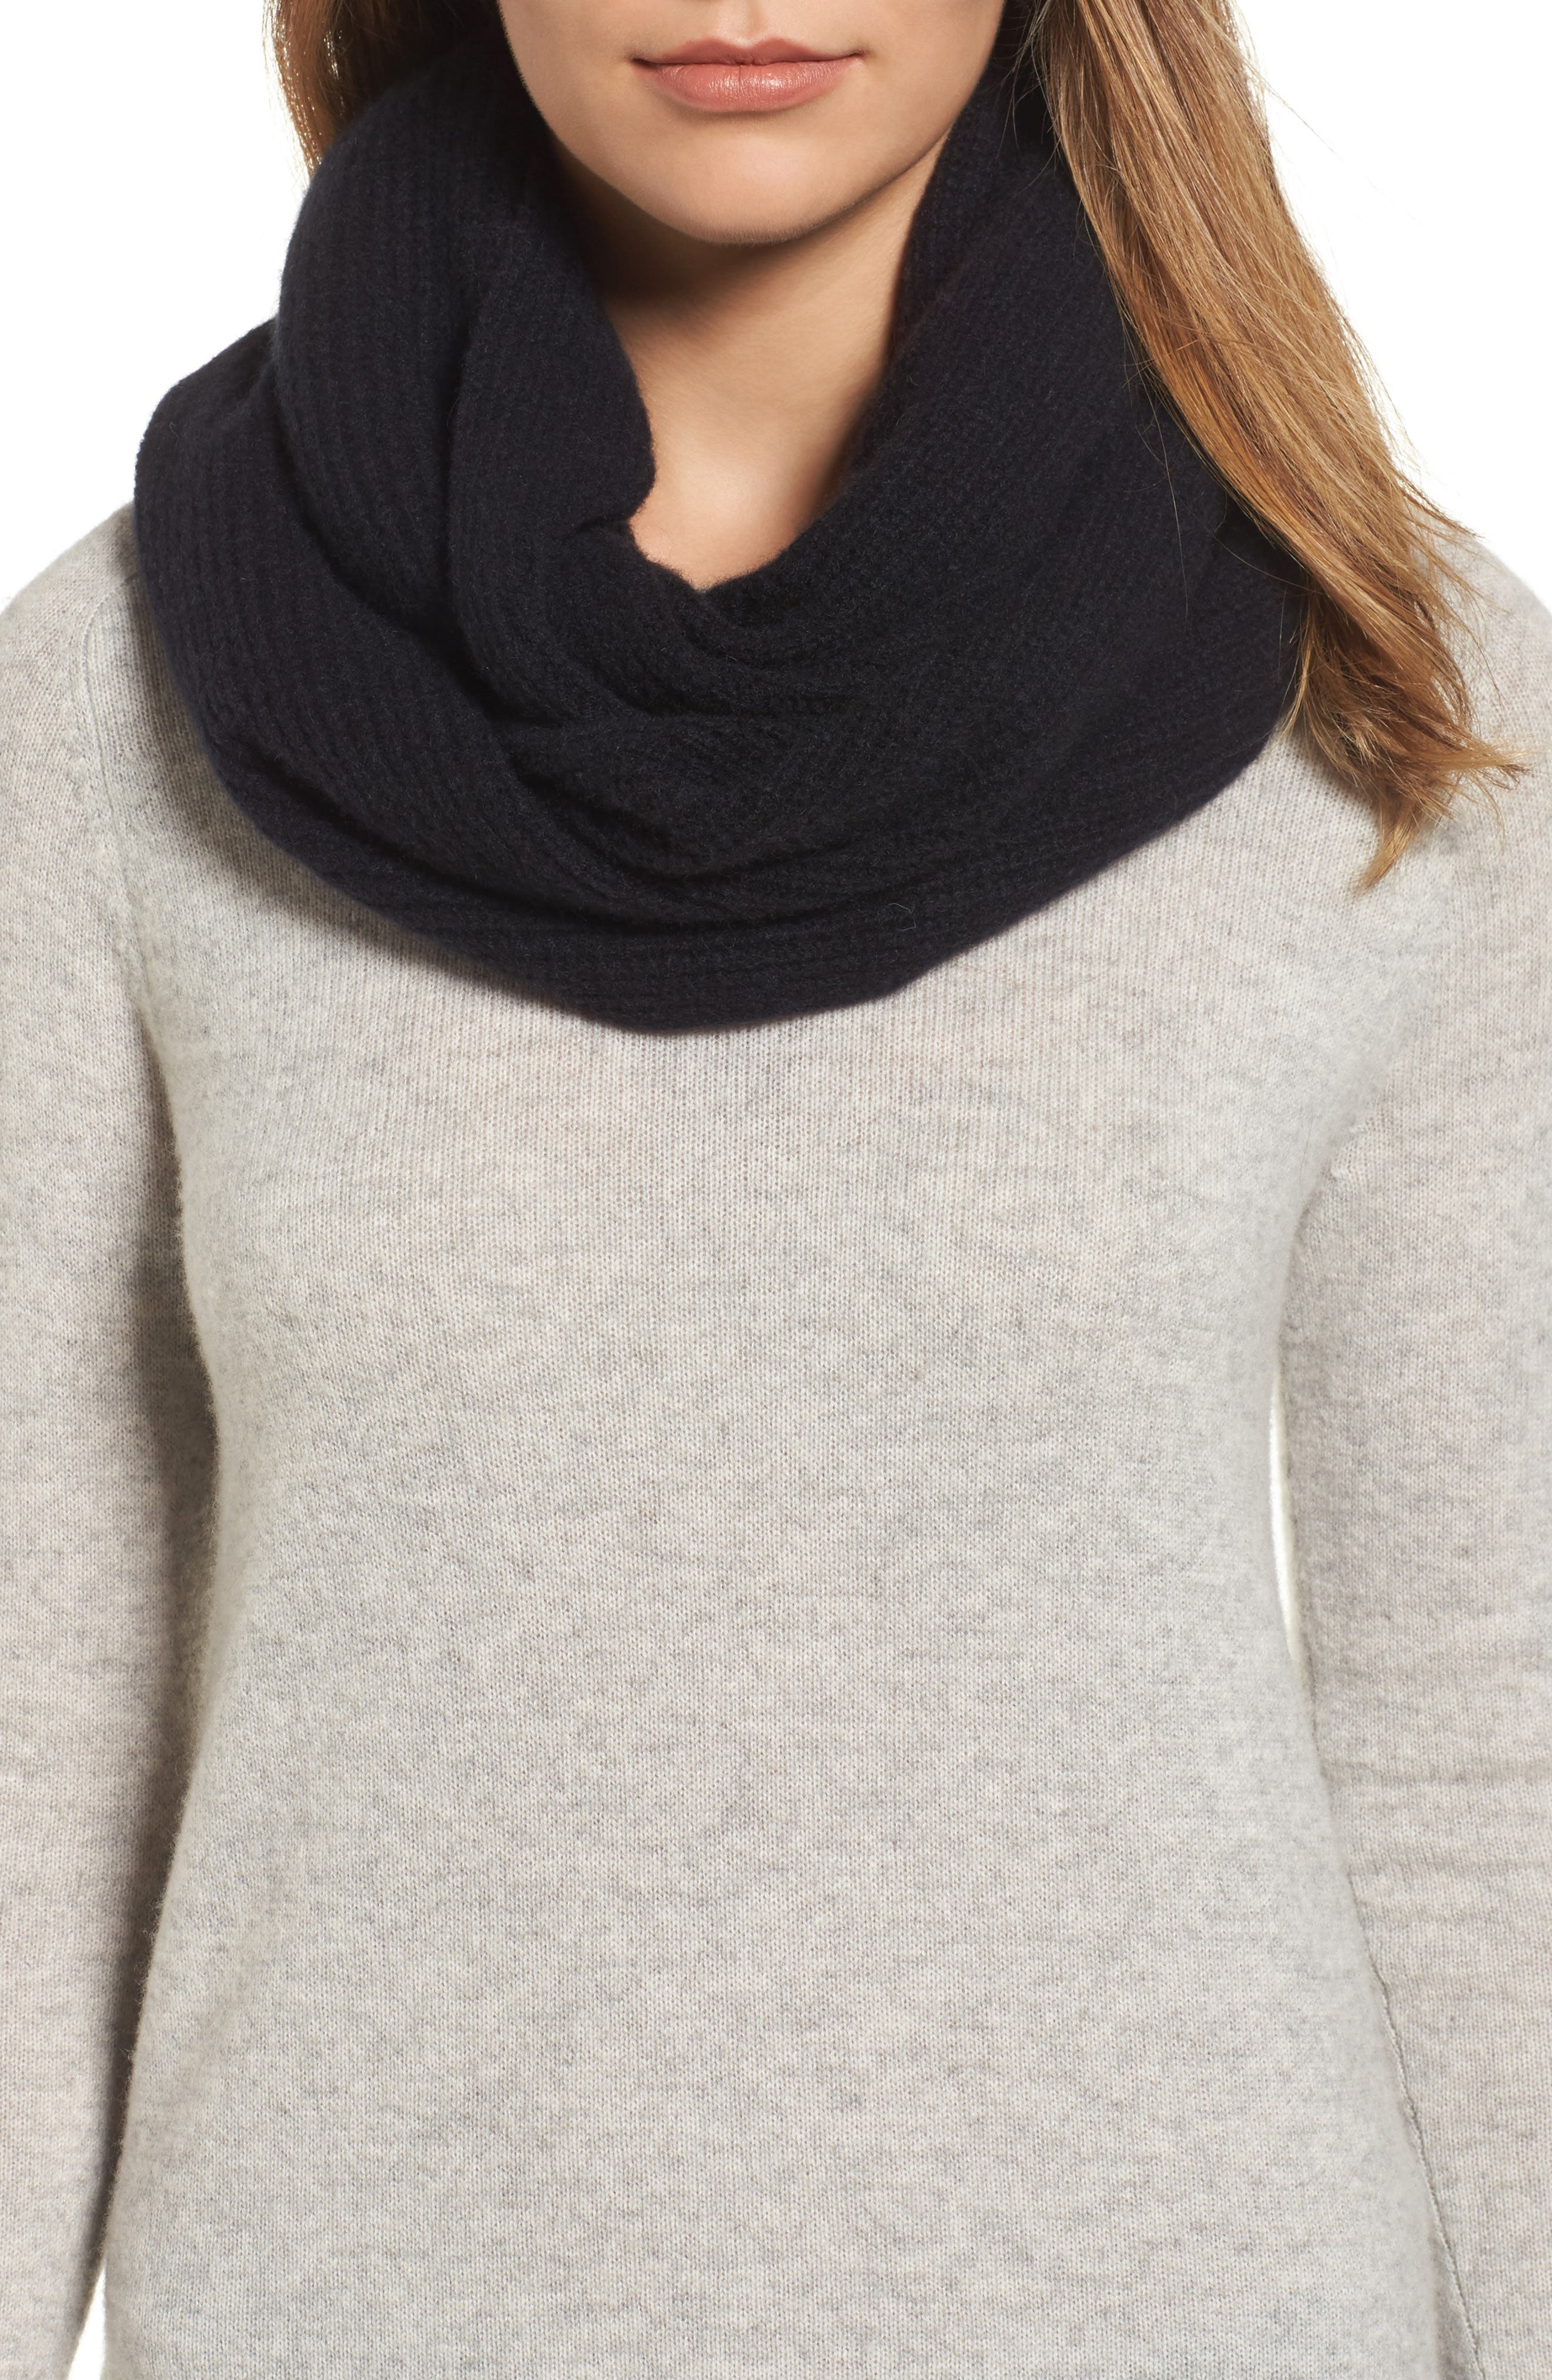 Cashmere Infinity Scarf,                             Main thumbnail 1, color,                             001